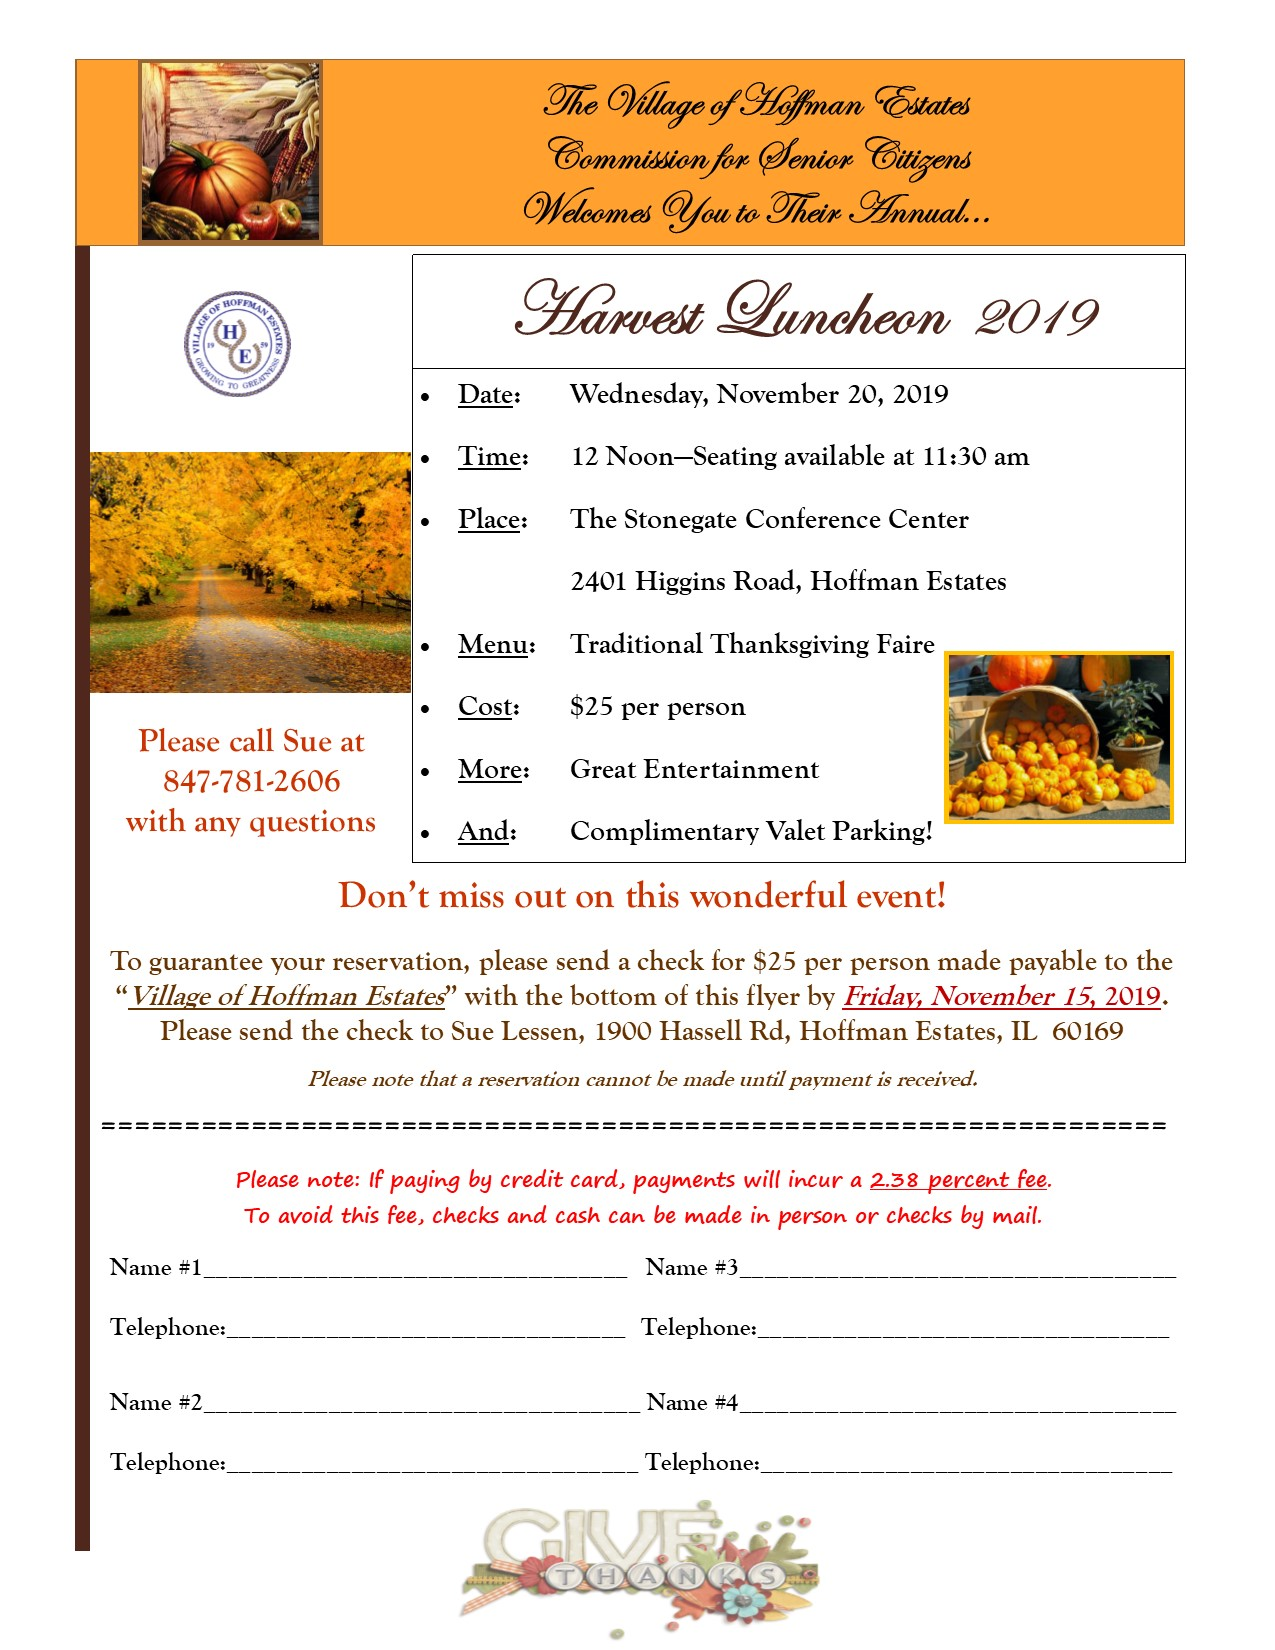 Harvest Luncheon Flyer 2019